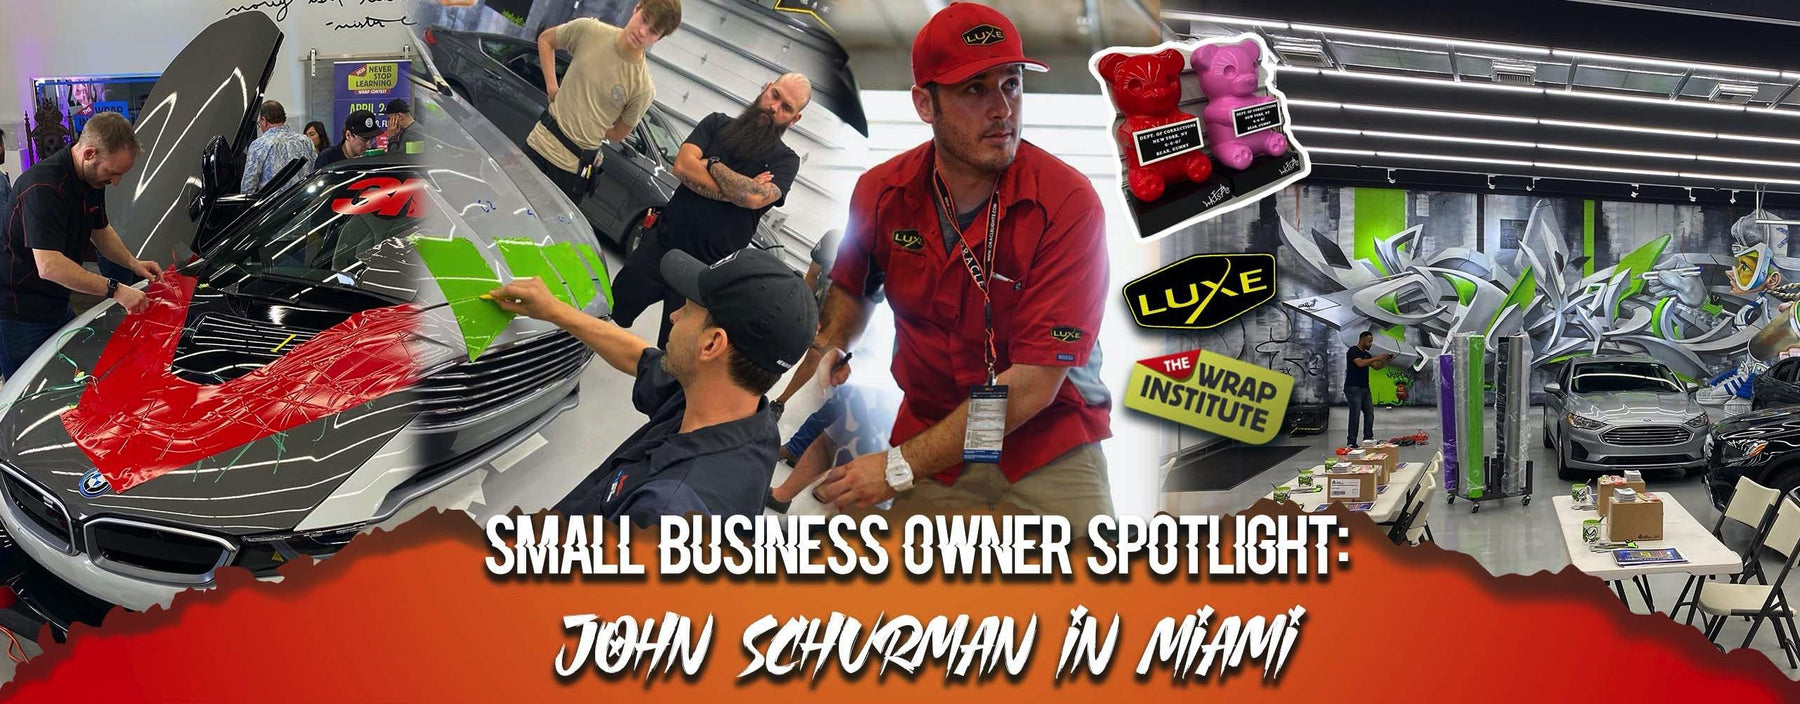 Small Business Owner Spotlight: John Schurman in Miami